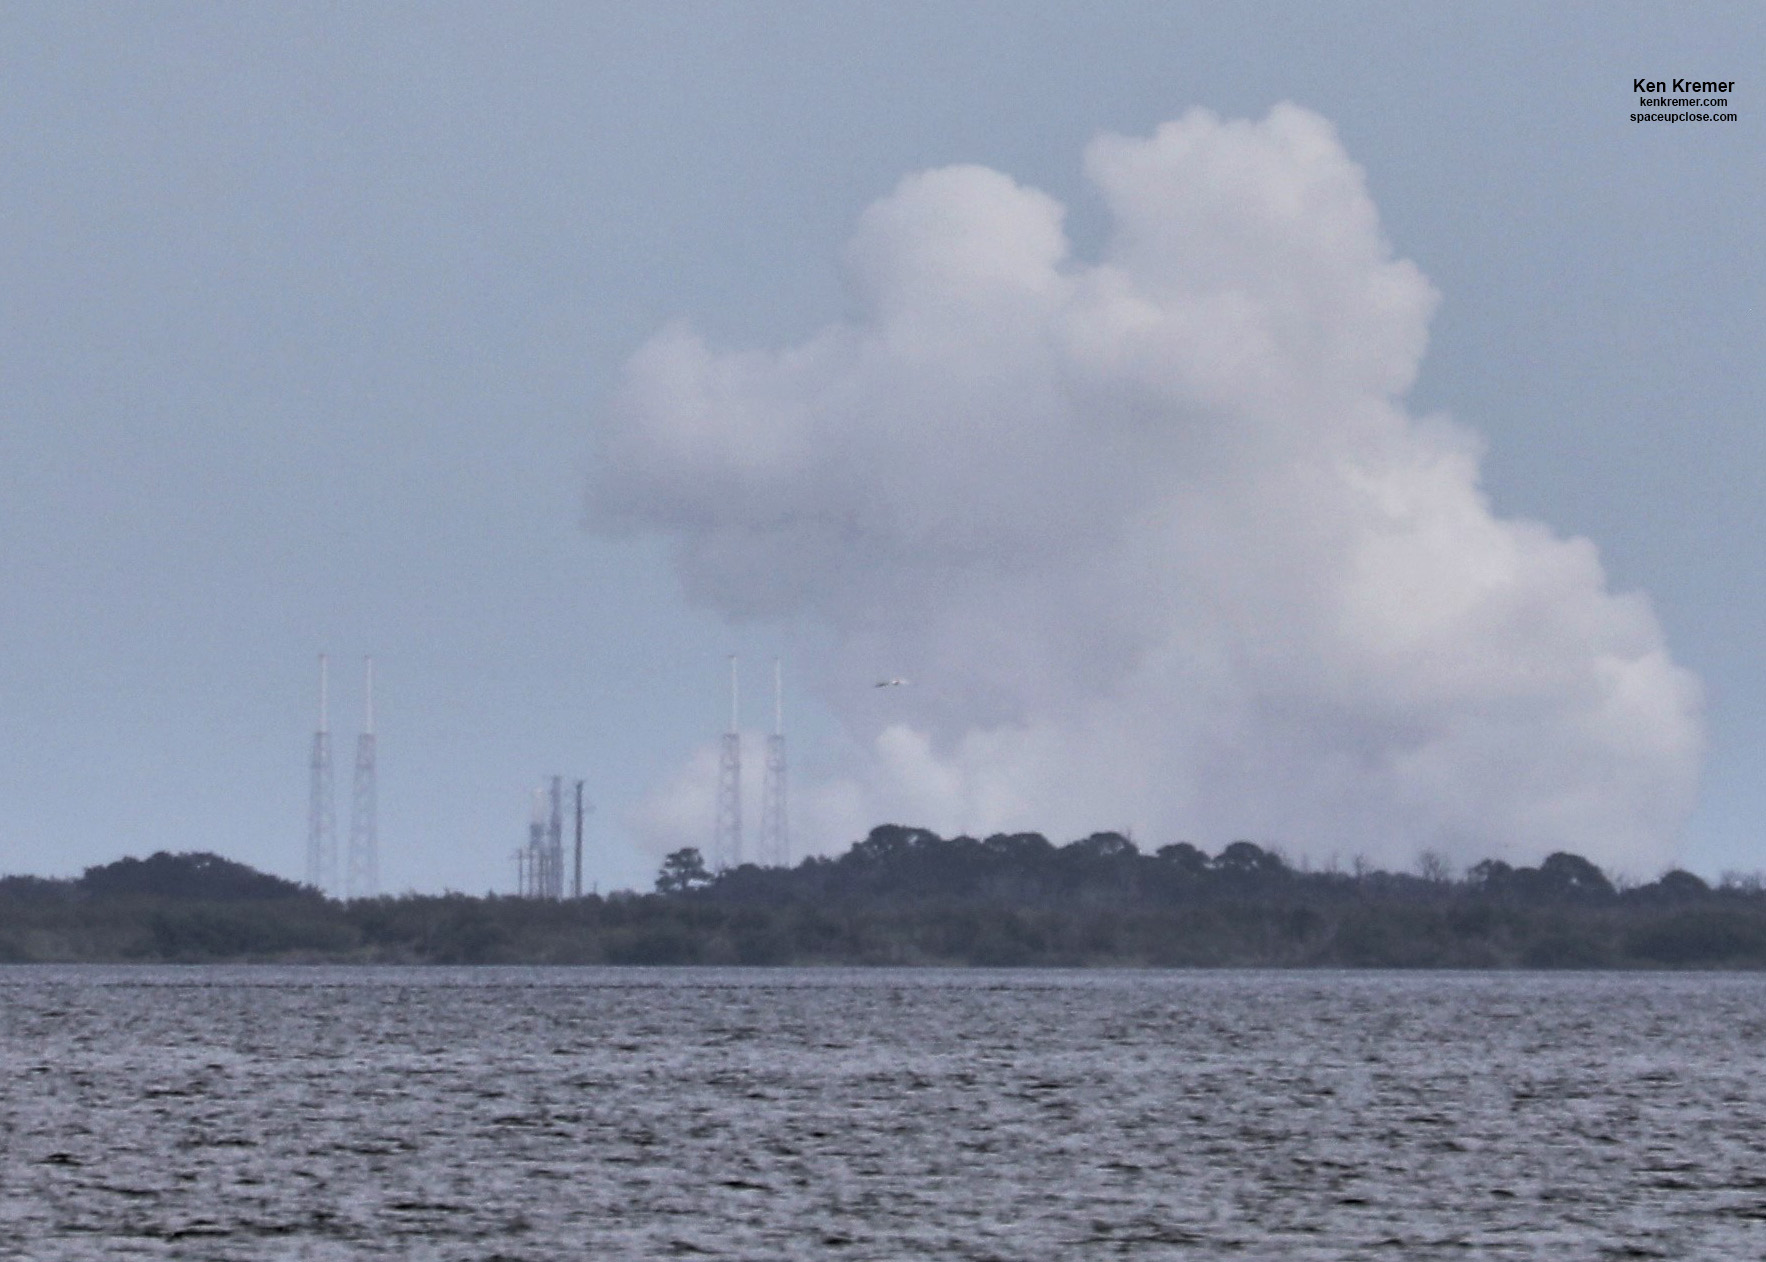 SpaceX Completes Successful Falcon 9 Static Fire Test, Targets Starlink 1 Launch Nov. 11